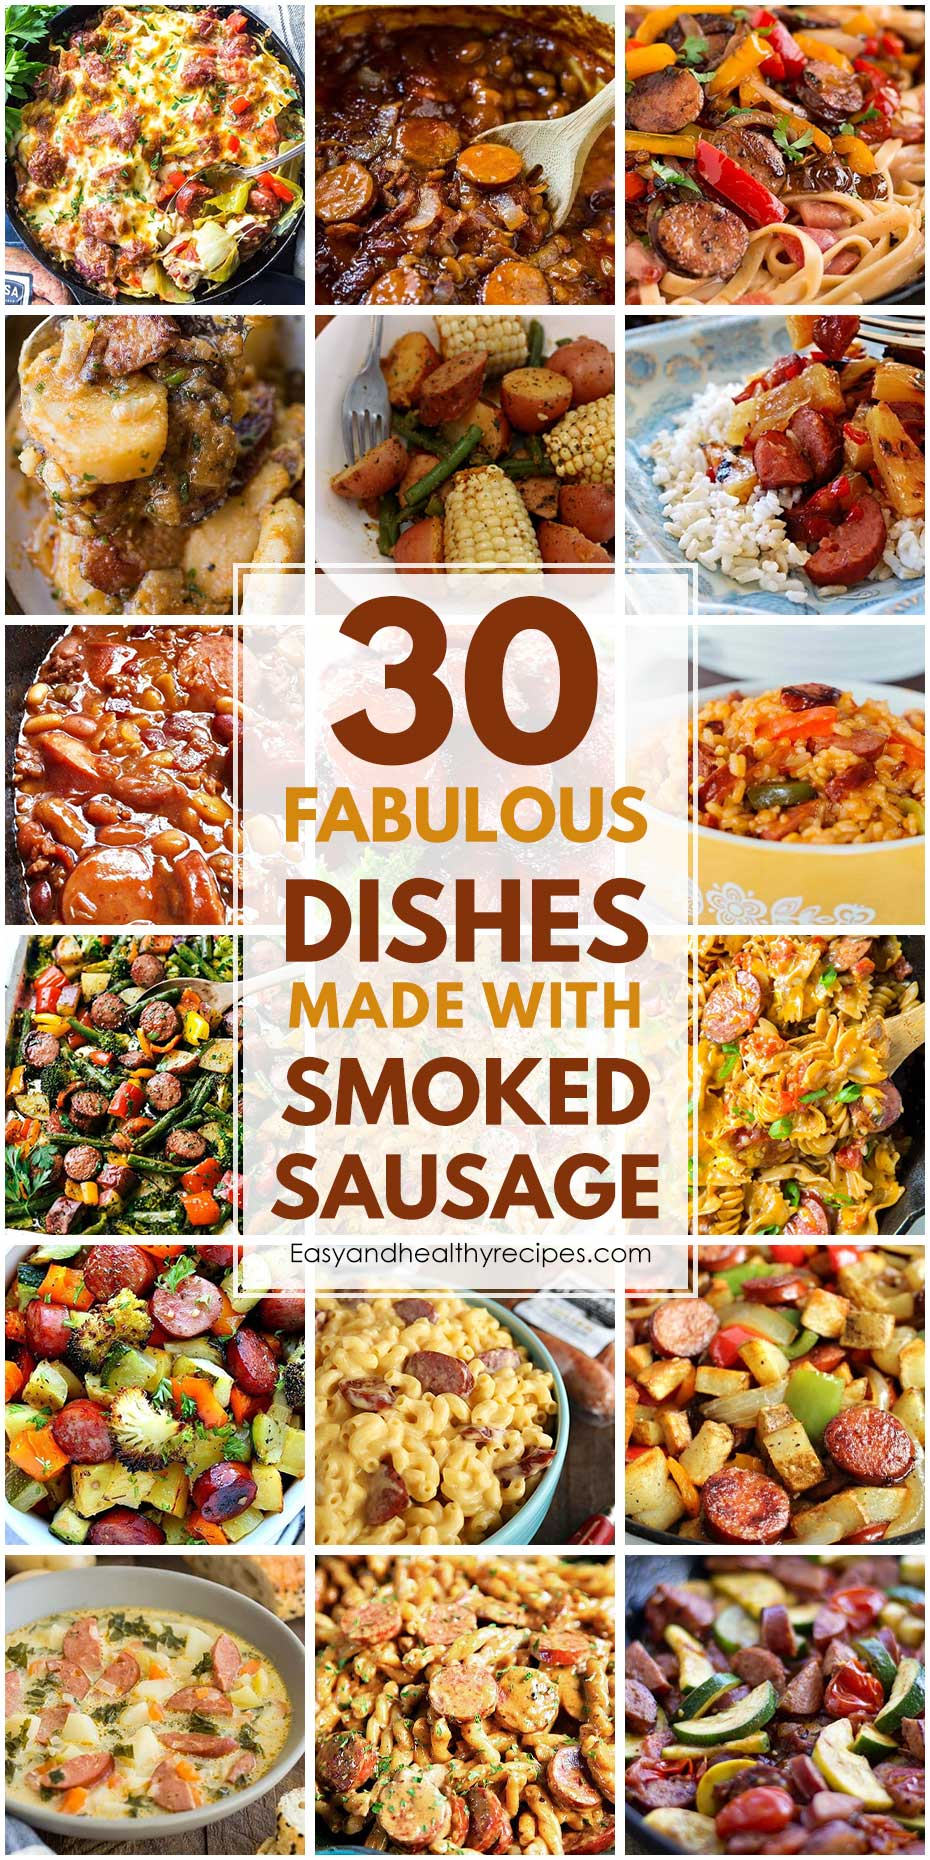 30 Fabulous Dishes Made With Smoked Sausage